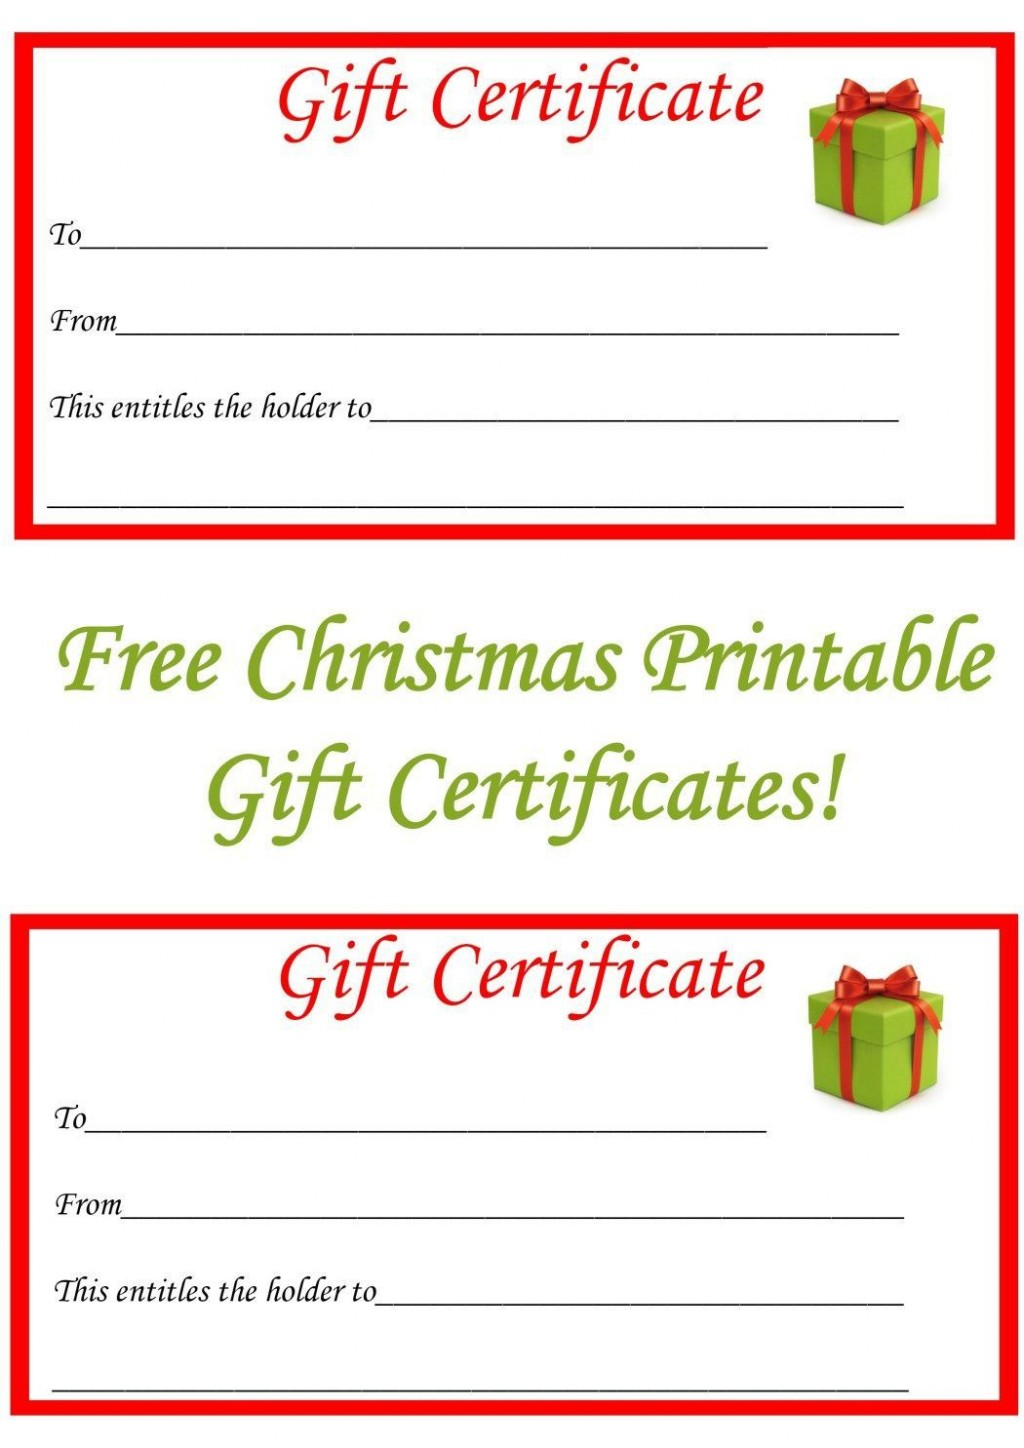 001 Simple Printable Gift Certificate Template Highest Quality  Card Free Christma MassageLarge